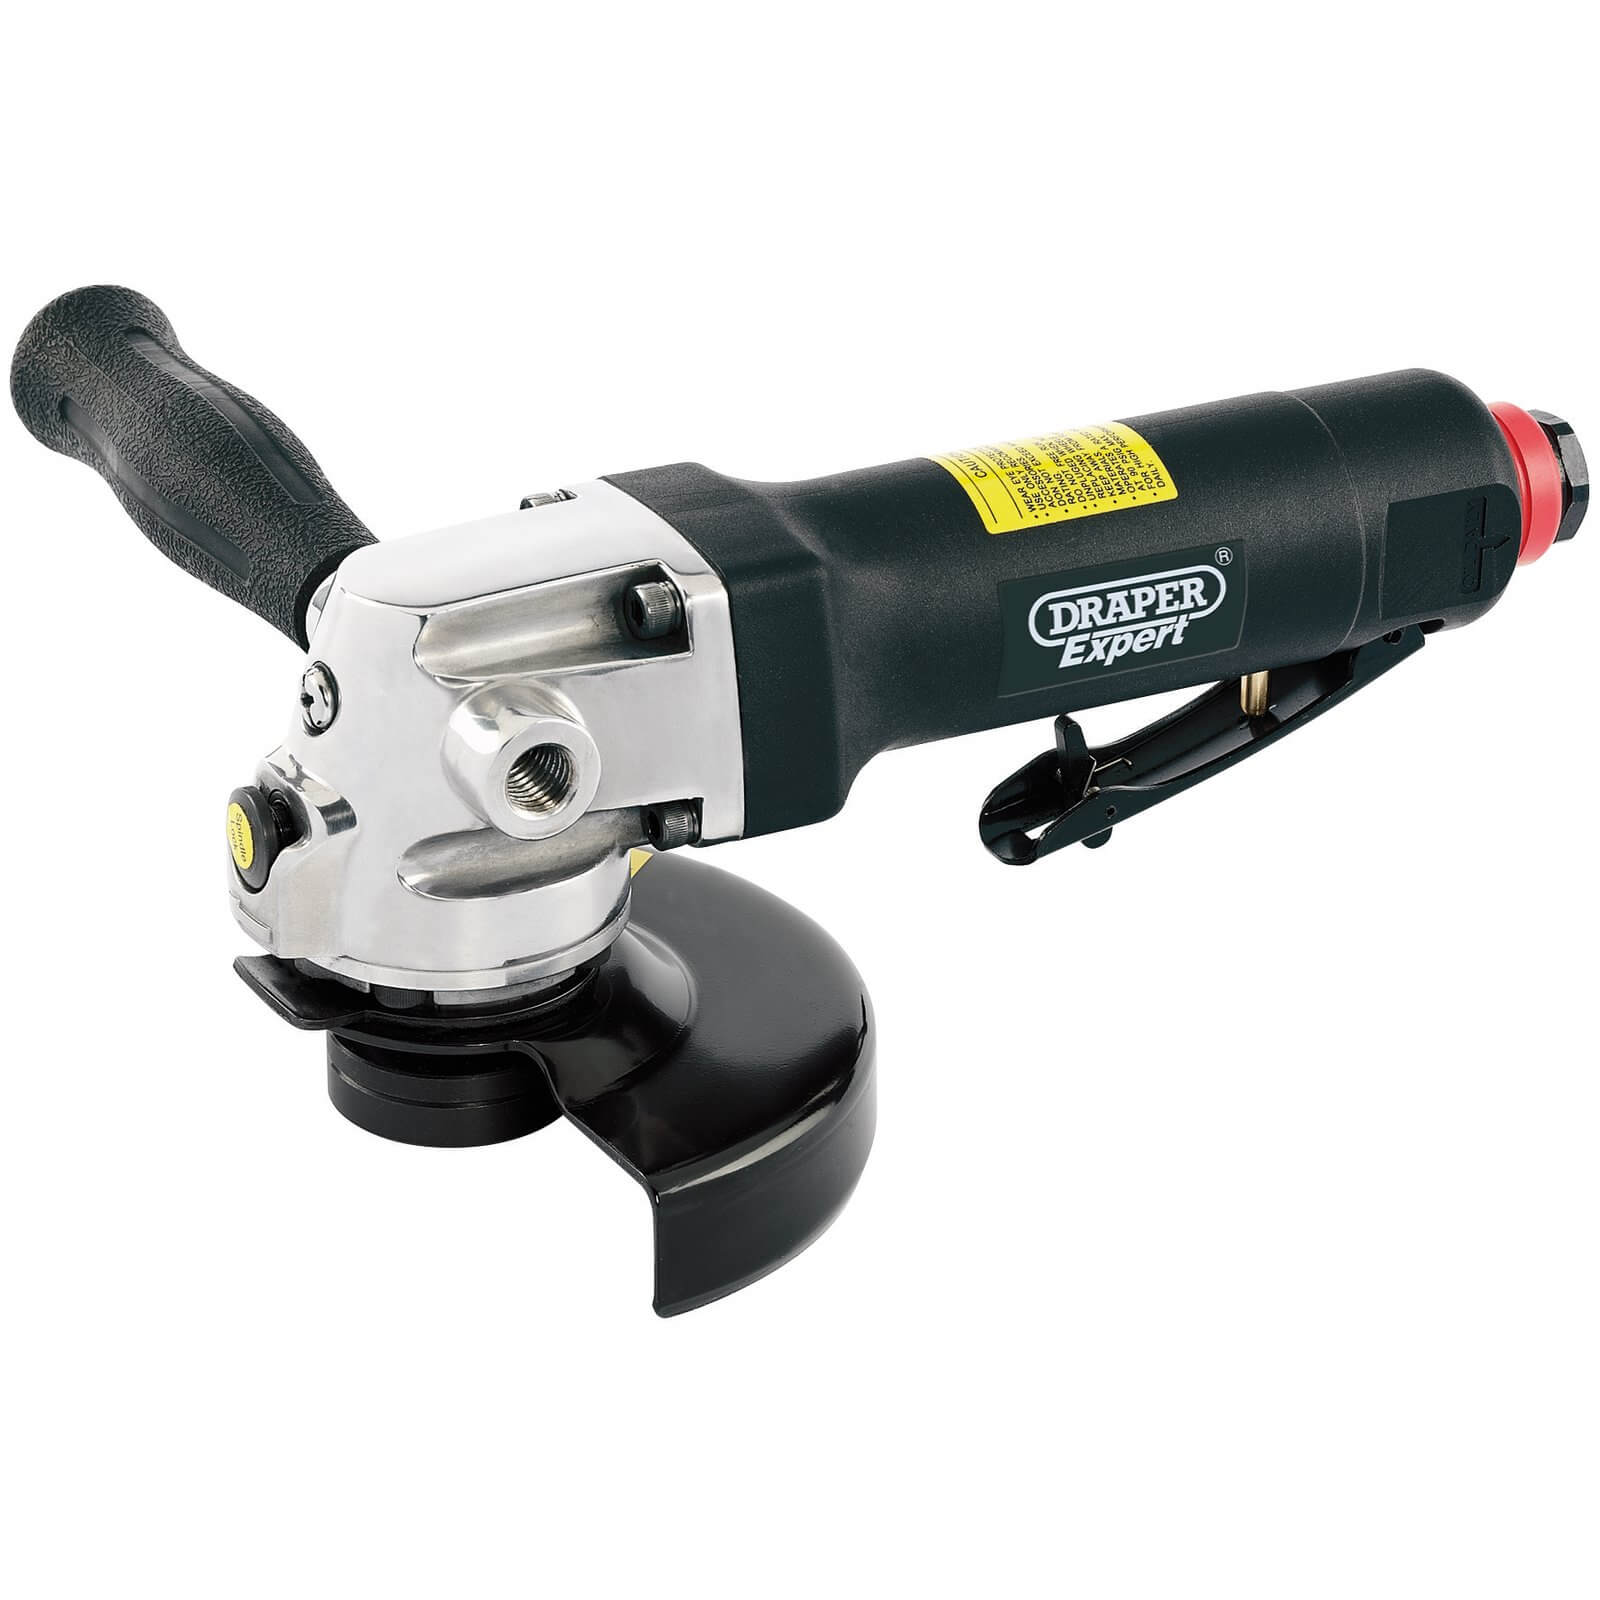 Image of Draper Expert 5228PRO Air Angle Grinder 115mm